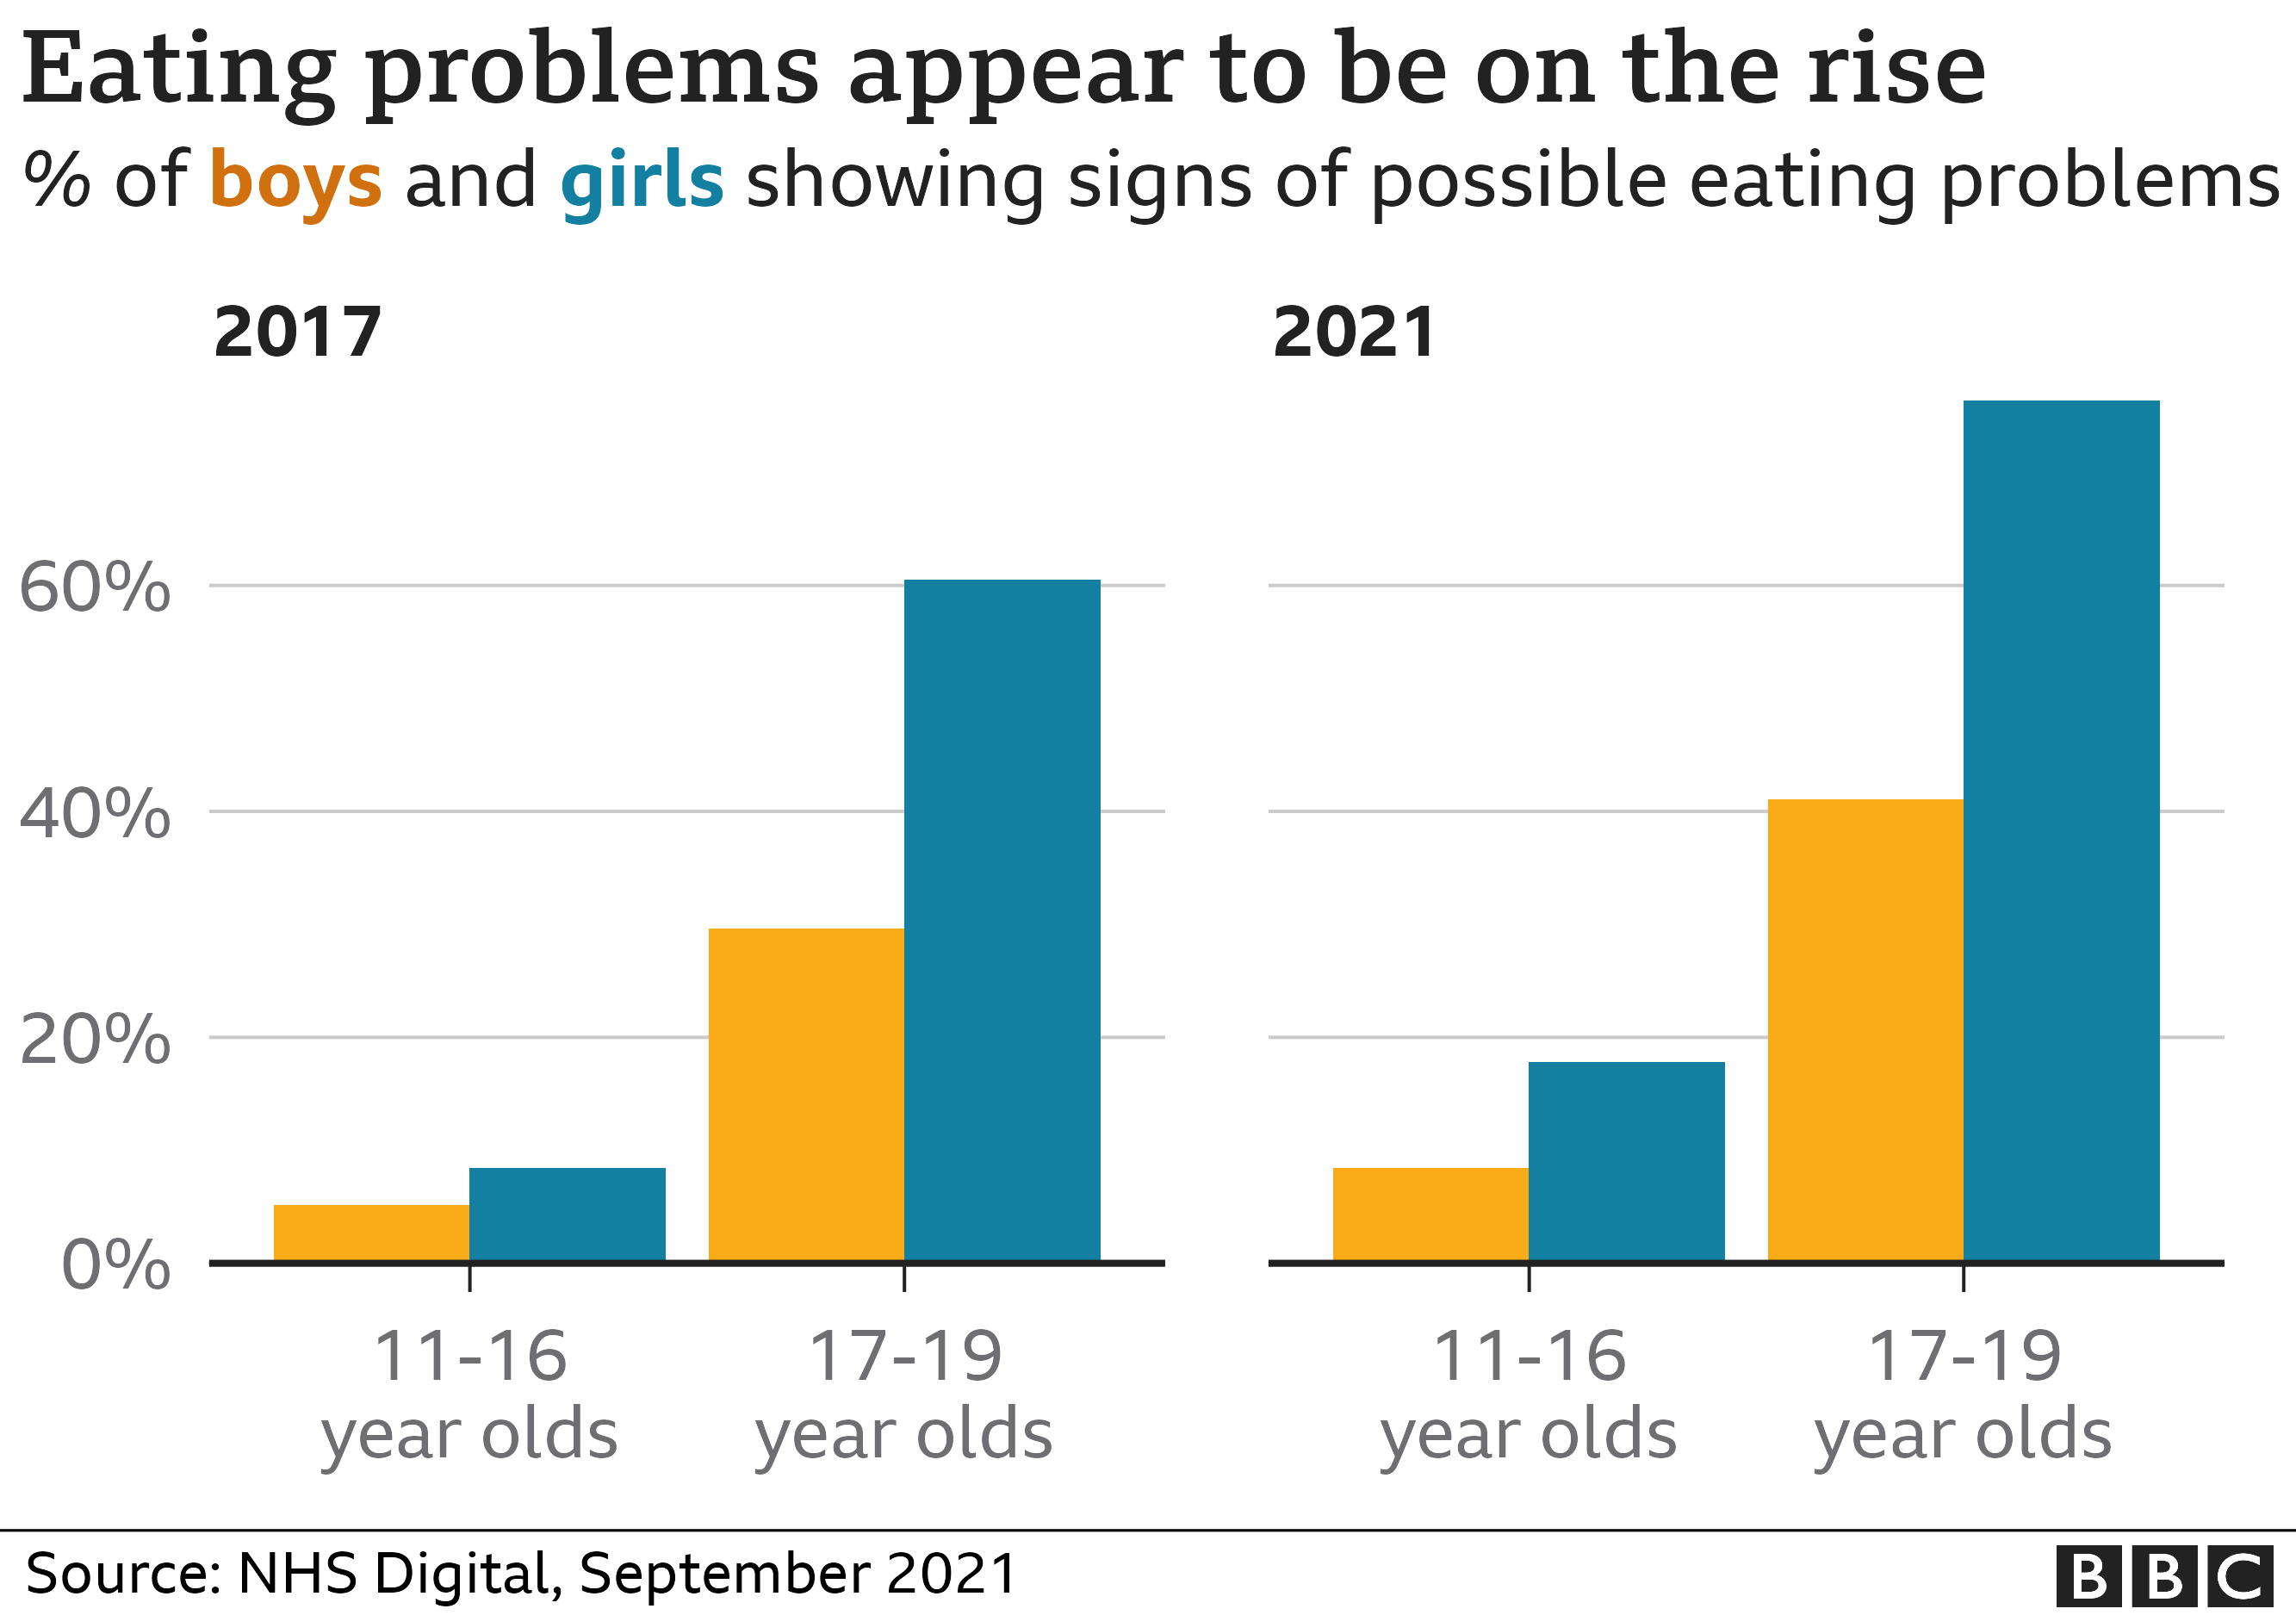 Eating problems are on the rise